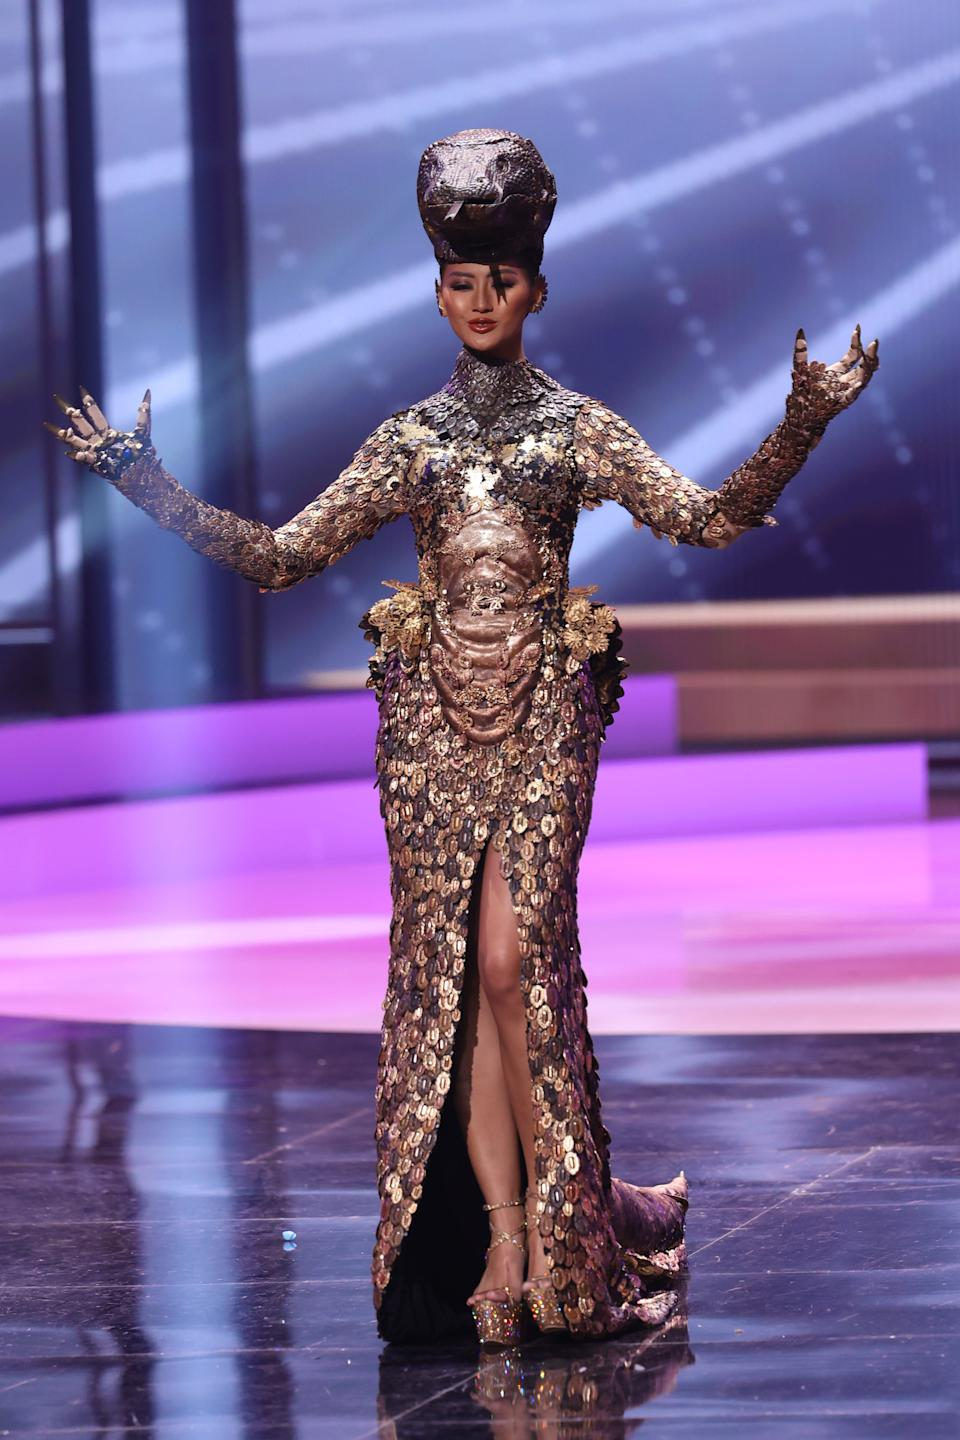 <p>Miss Indonesia Ayu Maulida Putri appears onstage at the Miss Universe 2021 - National Costume Show at Seminole Hard Rock Hotel & Casino on May 13, 2021 in Hollywood, Florida. (Photo by Rodrigo Varela/Getty Images)</p>